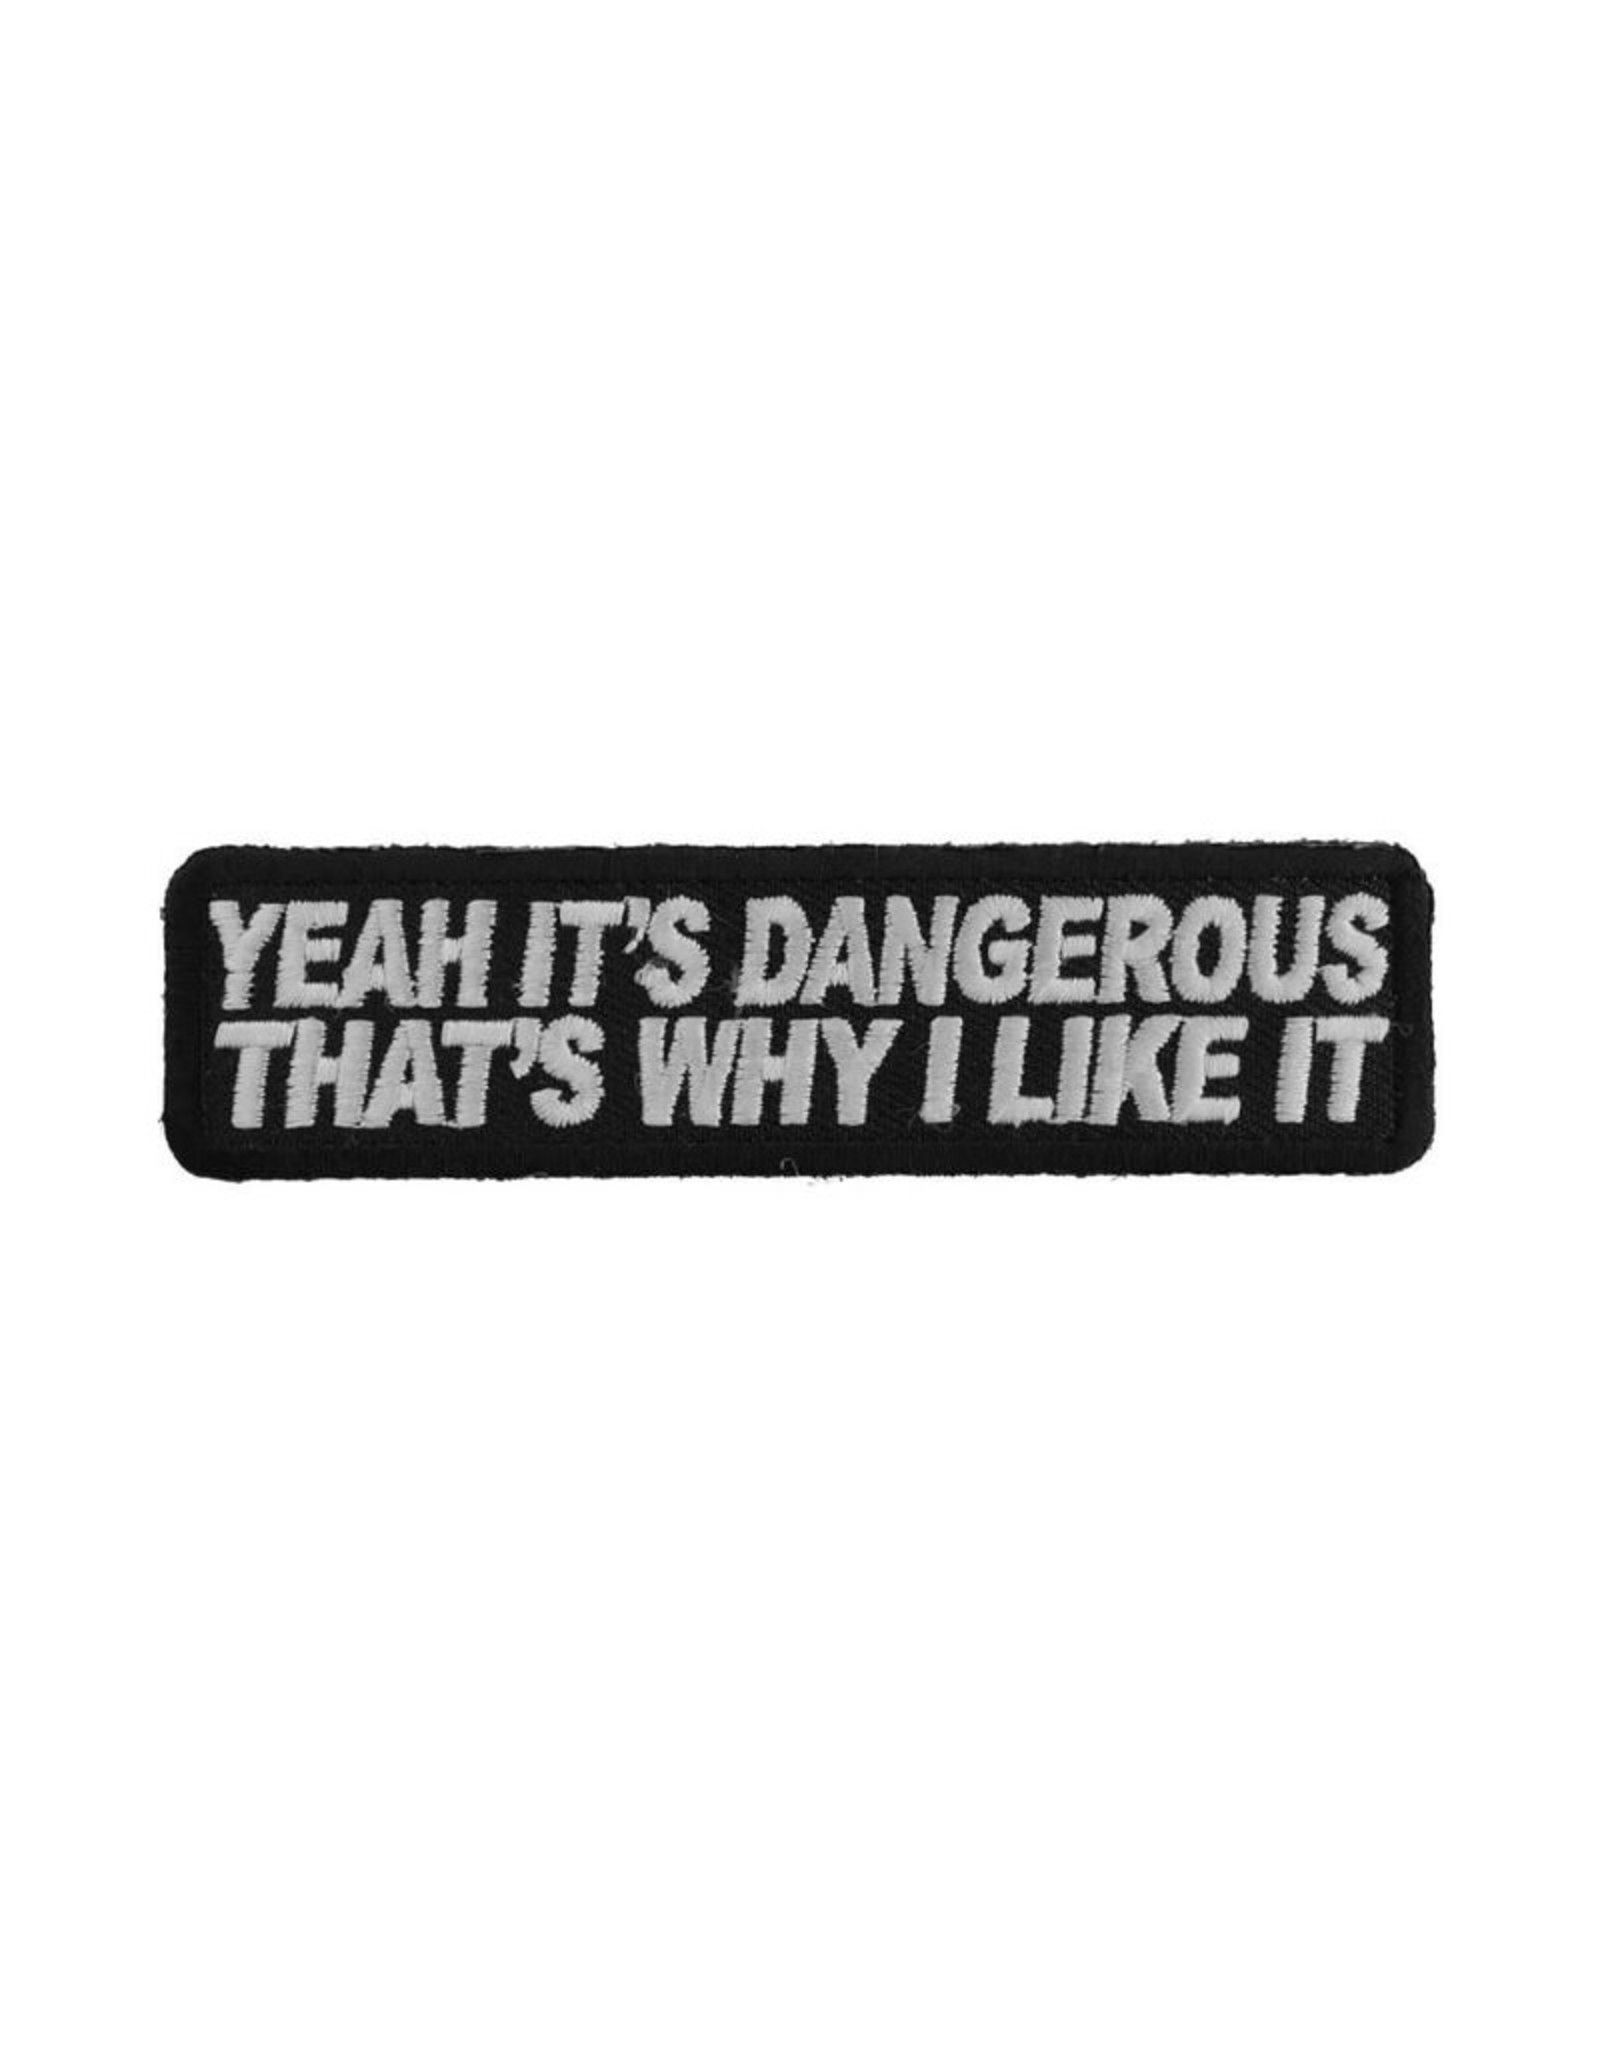 "MidMil Embroidered Yeah, it's dangerous. That's why I like it Patch 4"" wide x 1"" high Black"